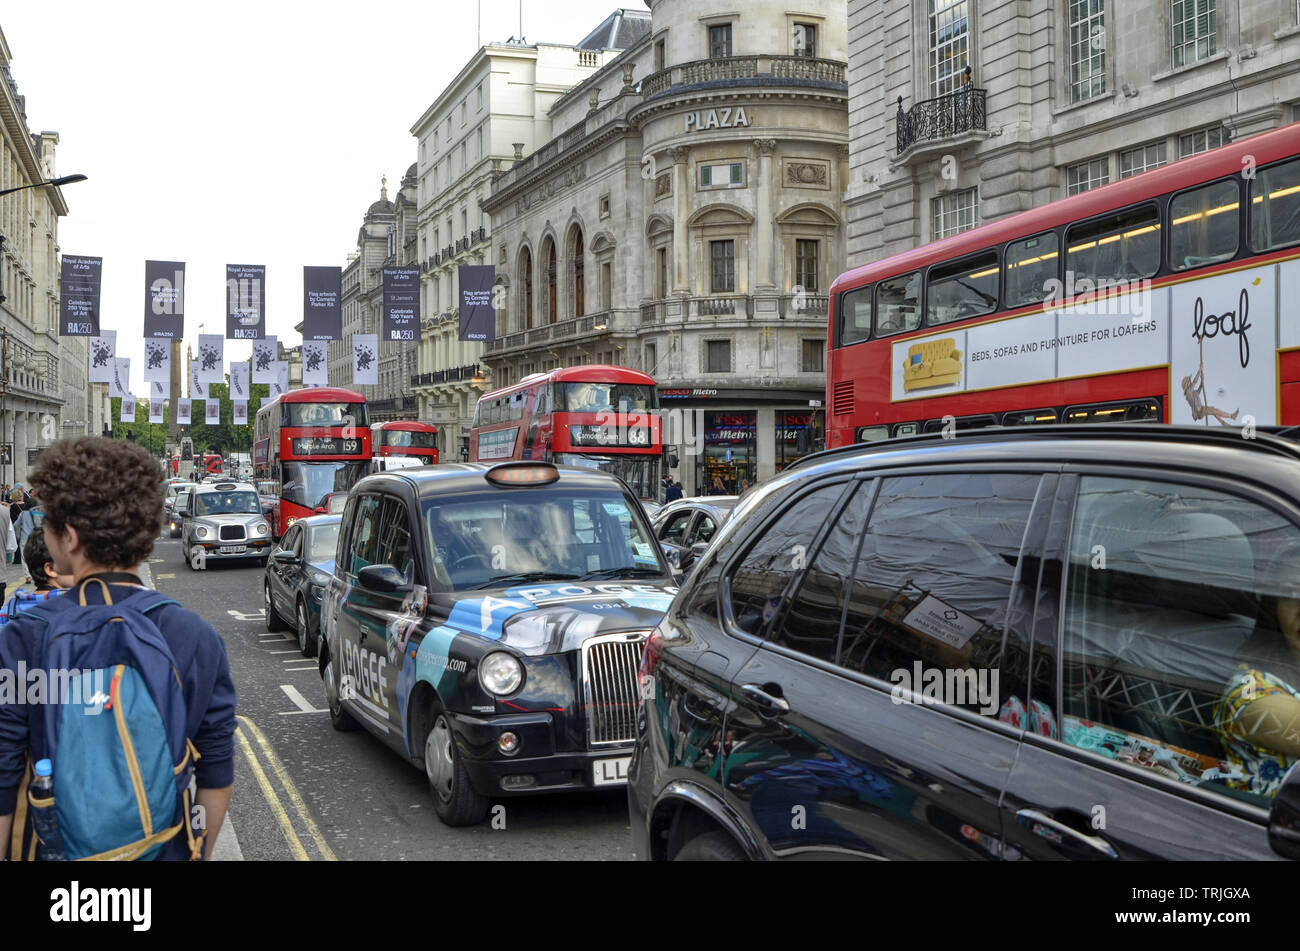 London, United Kingdom, 14 June 2018. London taxis, called cabs, are one of the symbols of the city. Classically of strictly black color. Sometimes wi - Stock Image